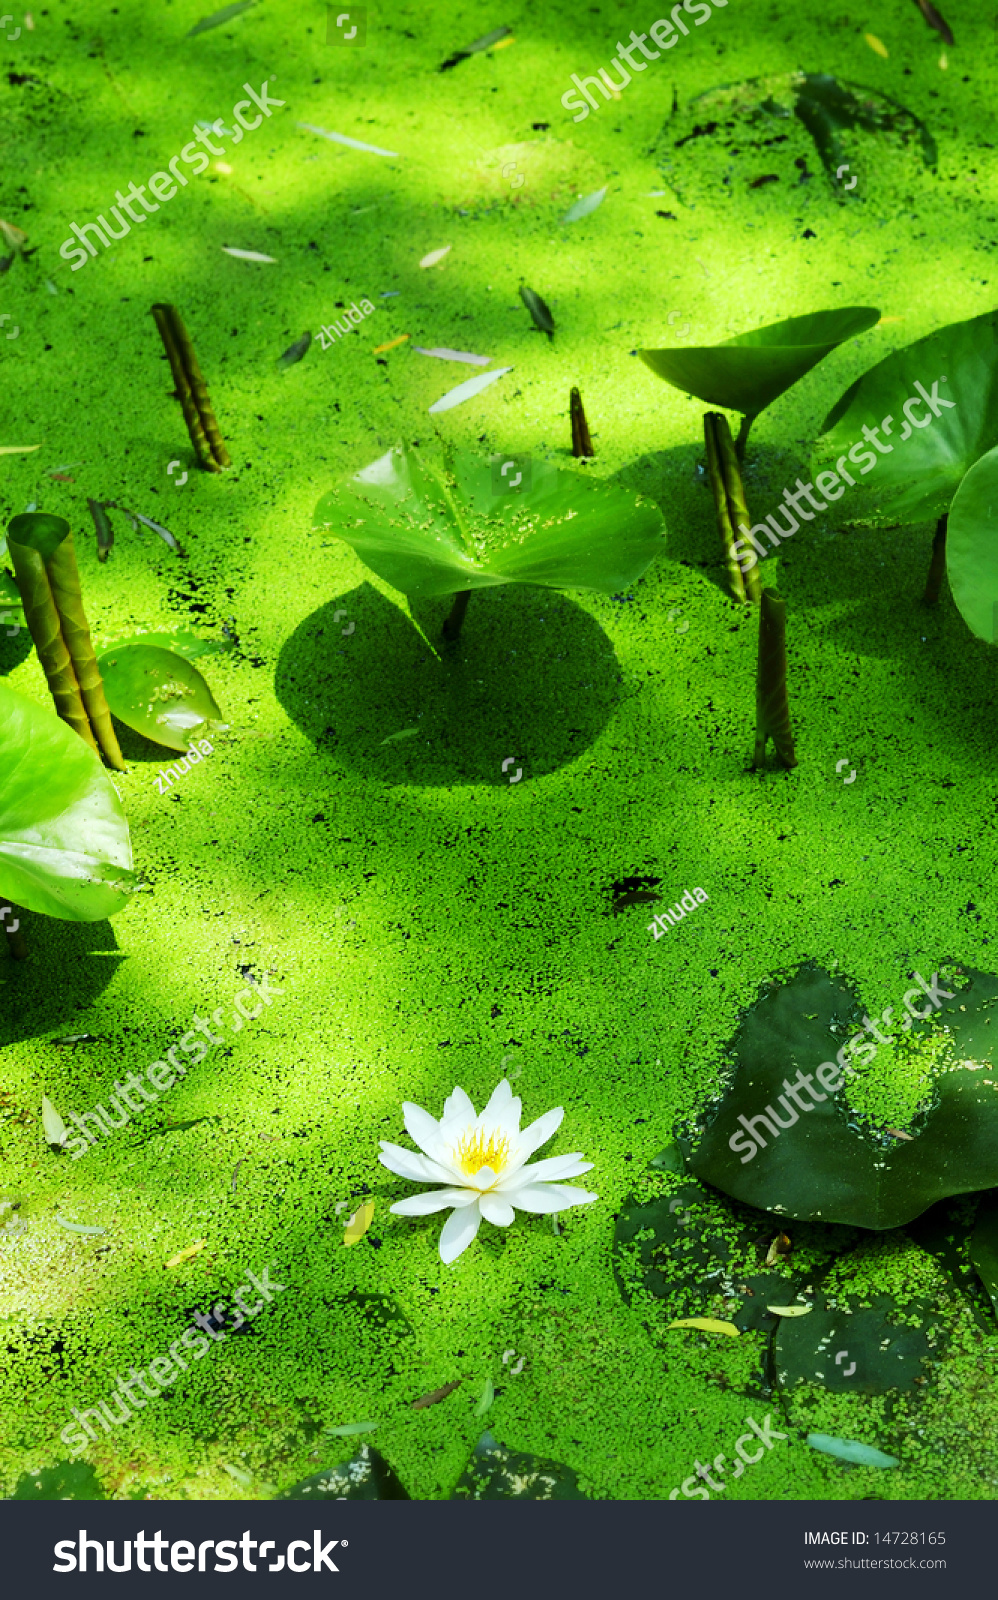 Water lily and duckweed in green pond stock photo 14728165 for Green pond water